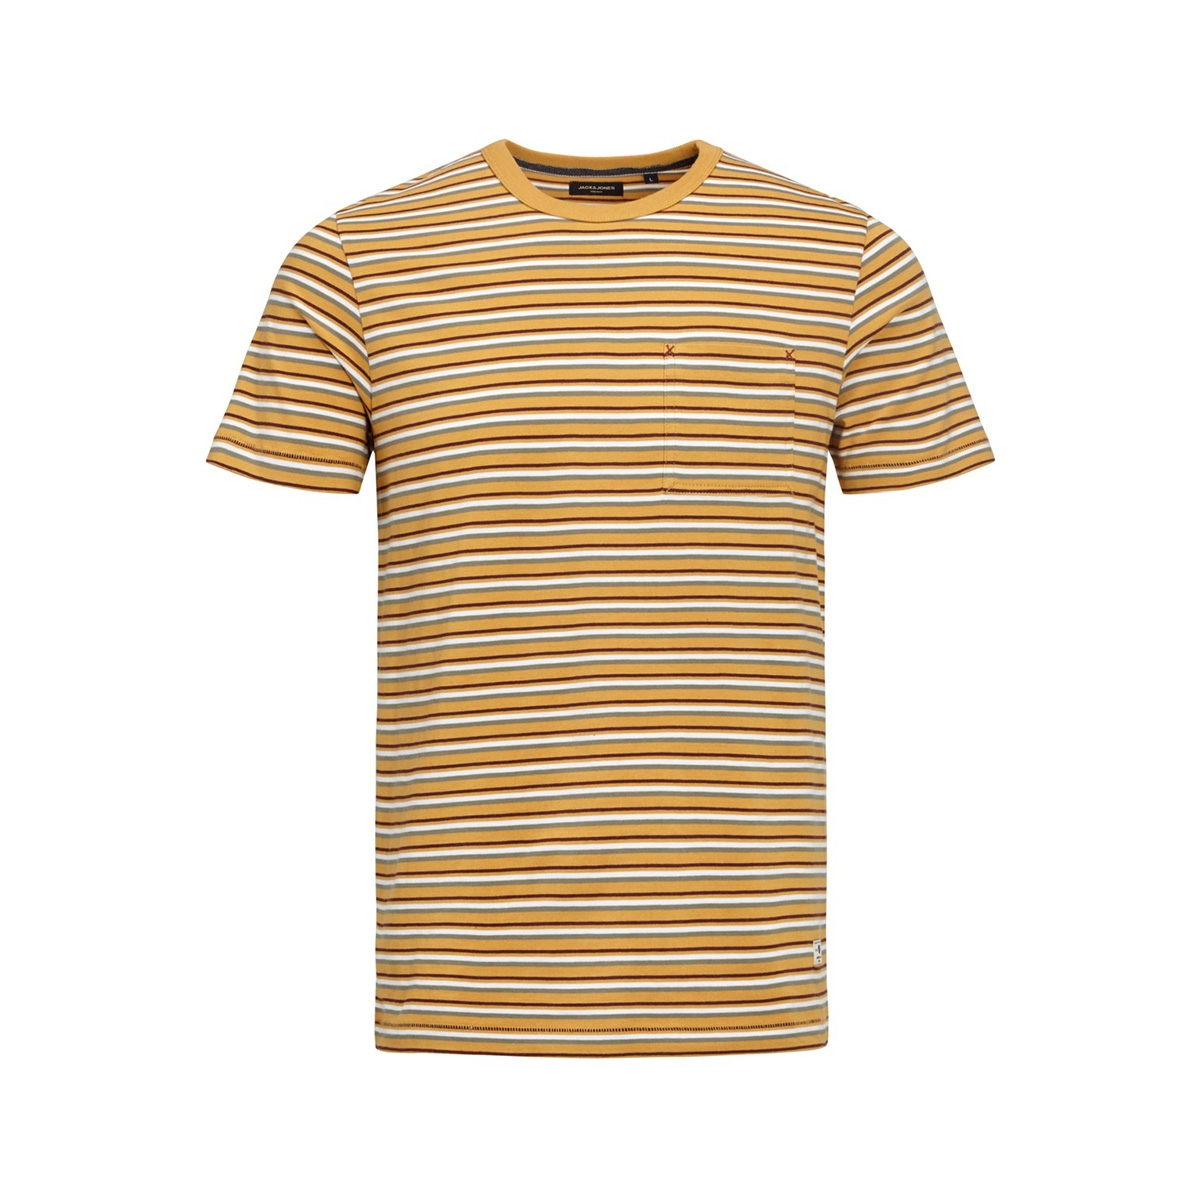 jprmatt stripe blu. tee ss crew neck 12152760 jack & jones t-shirt tinsel/slim fit